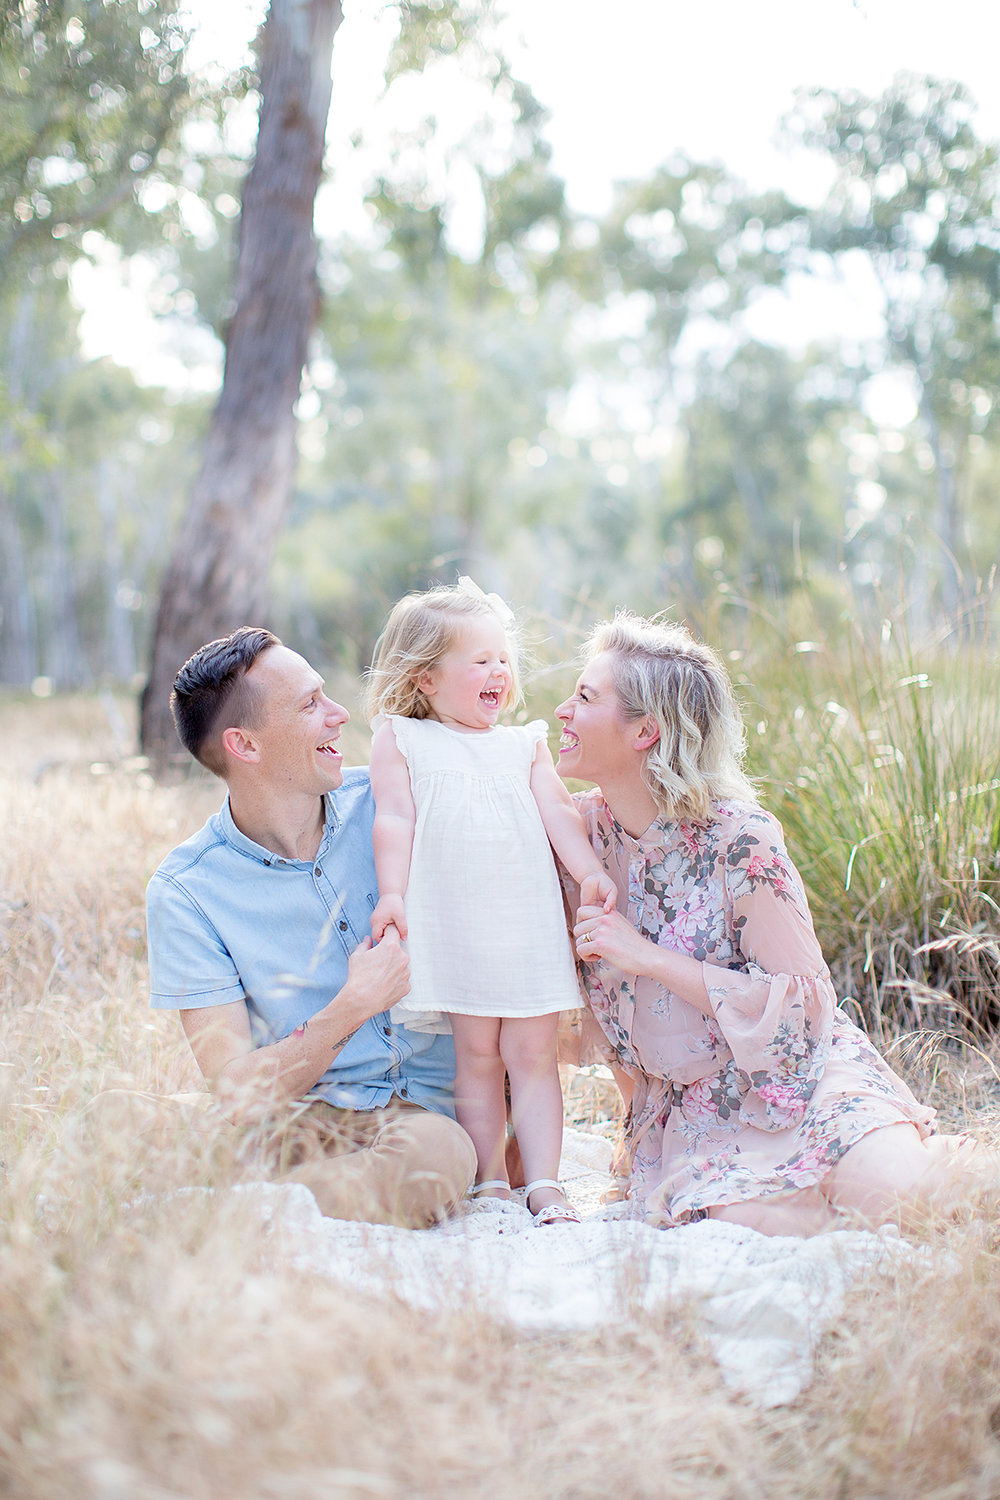 MEL_PLAMBECK_PHOTOGRAPHY_BENDIGO_PHOTOGRAPHER_FAMILY_NEWBORN_PORTAIT_MELBOURNE_LIFESTYLE_008.jpg